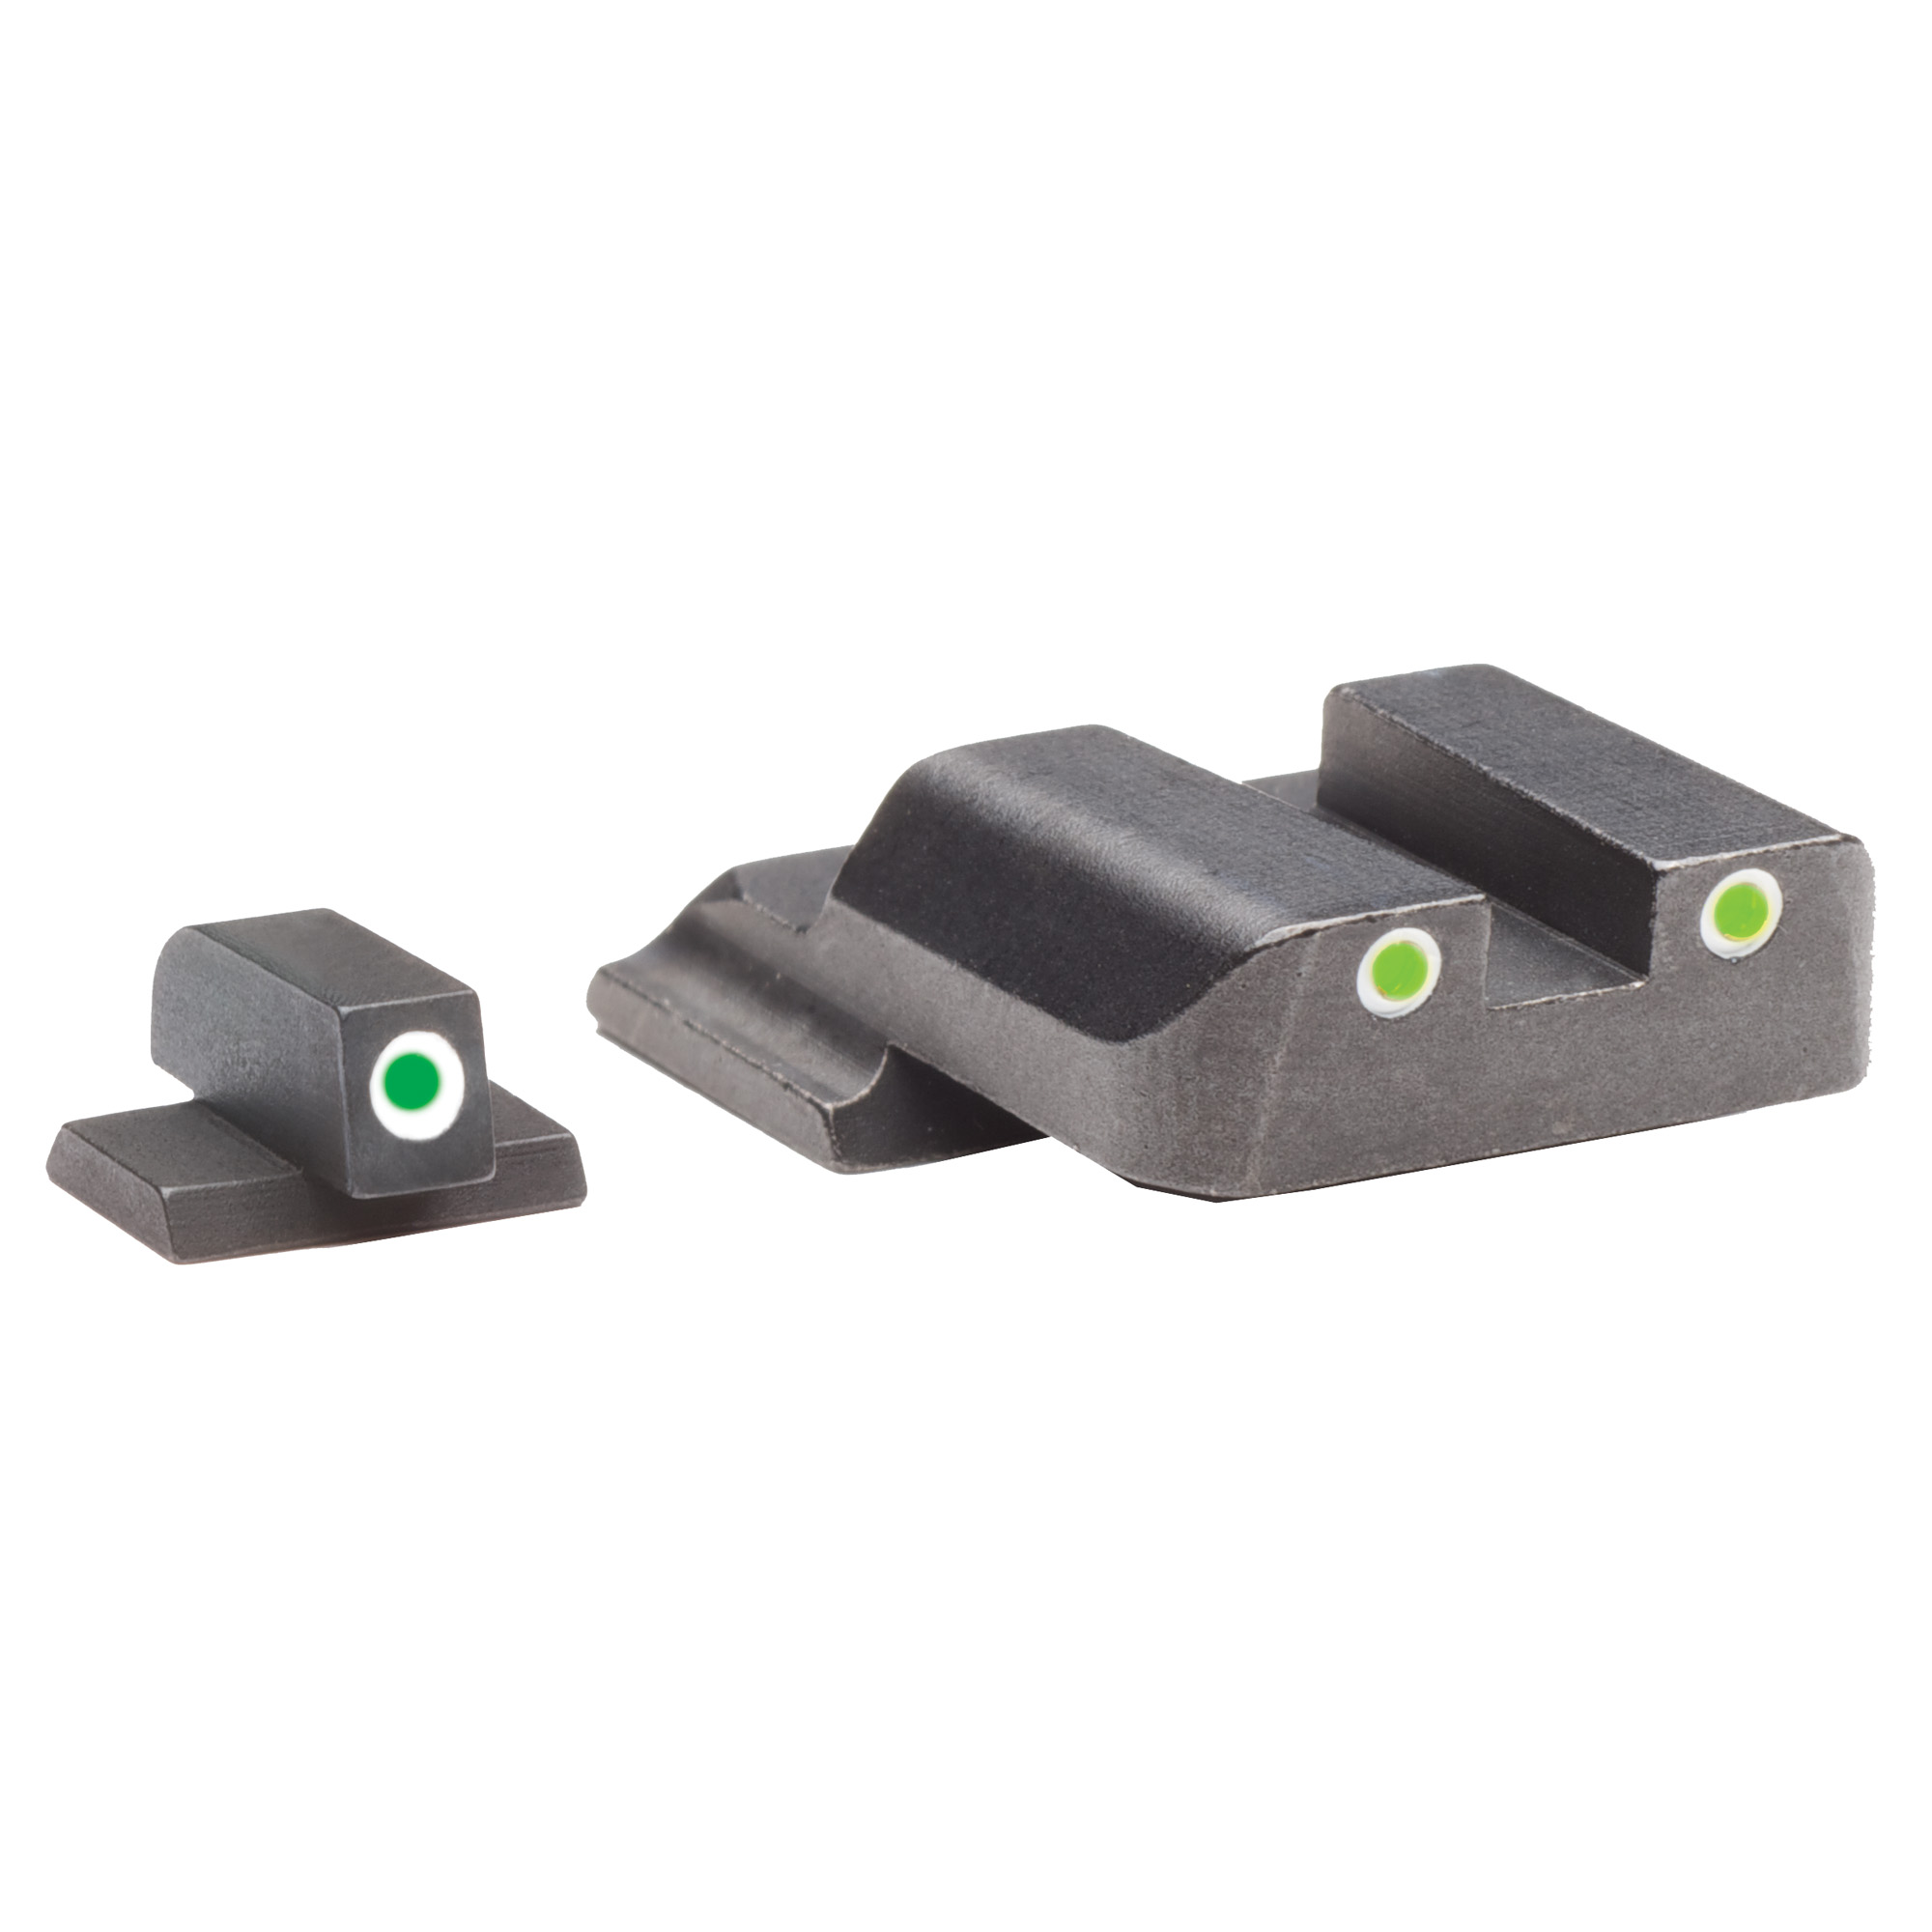 """The Classic 3-dot design is the most popular among personal defense"""" military"""" and law enforcement users. These sets feature a horizontal alignment of tritium dots inside bright white outlines."""